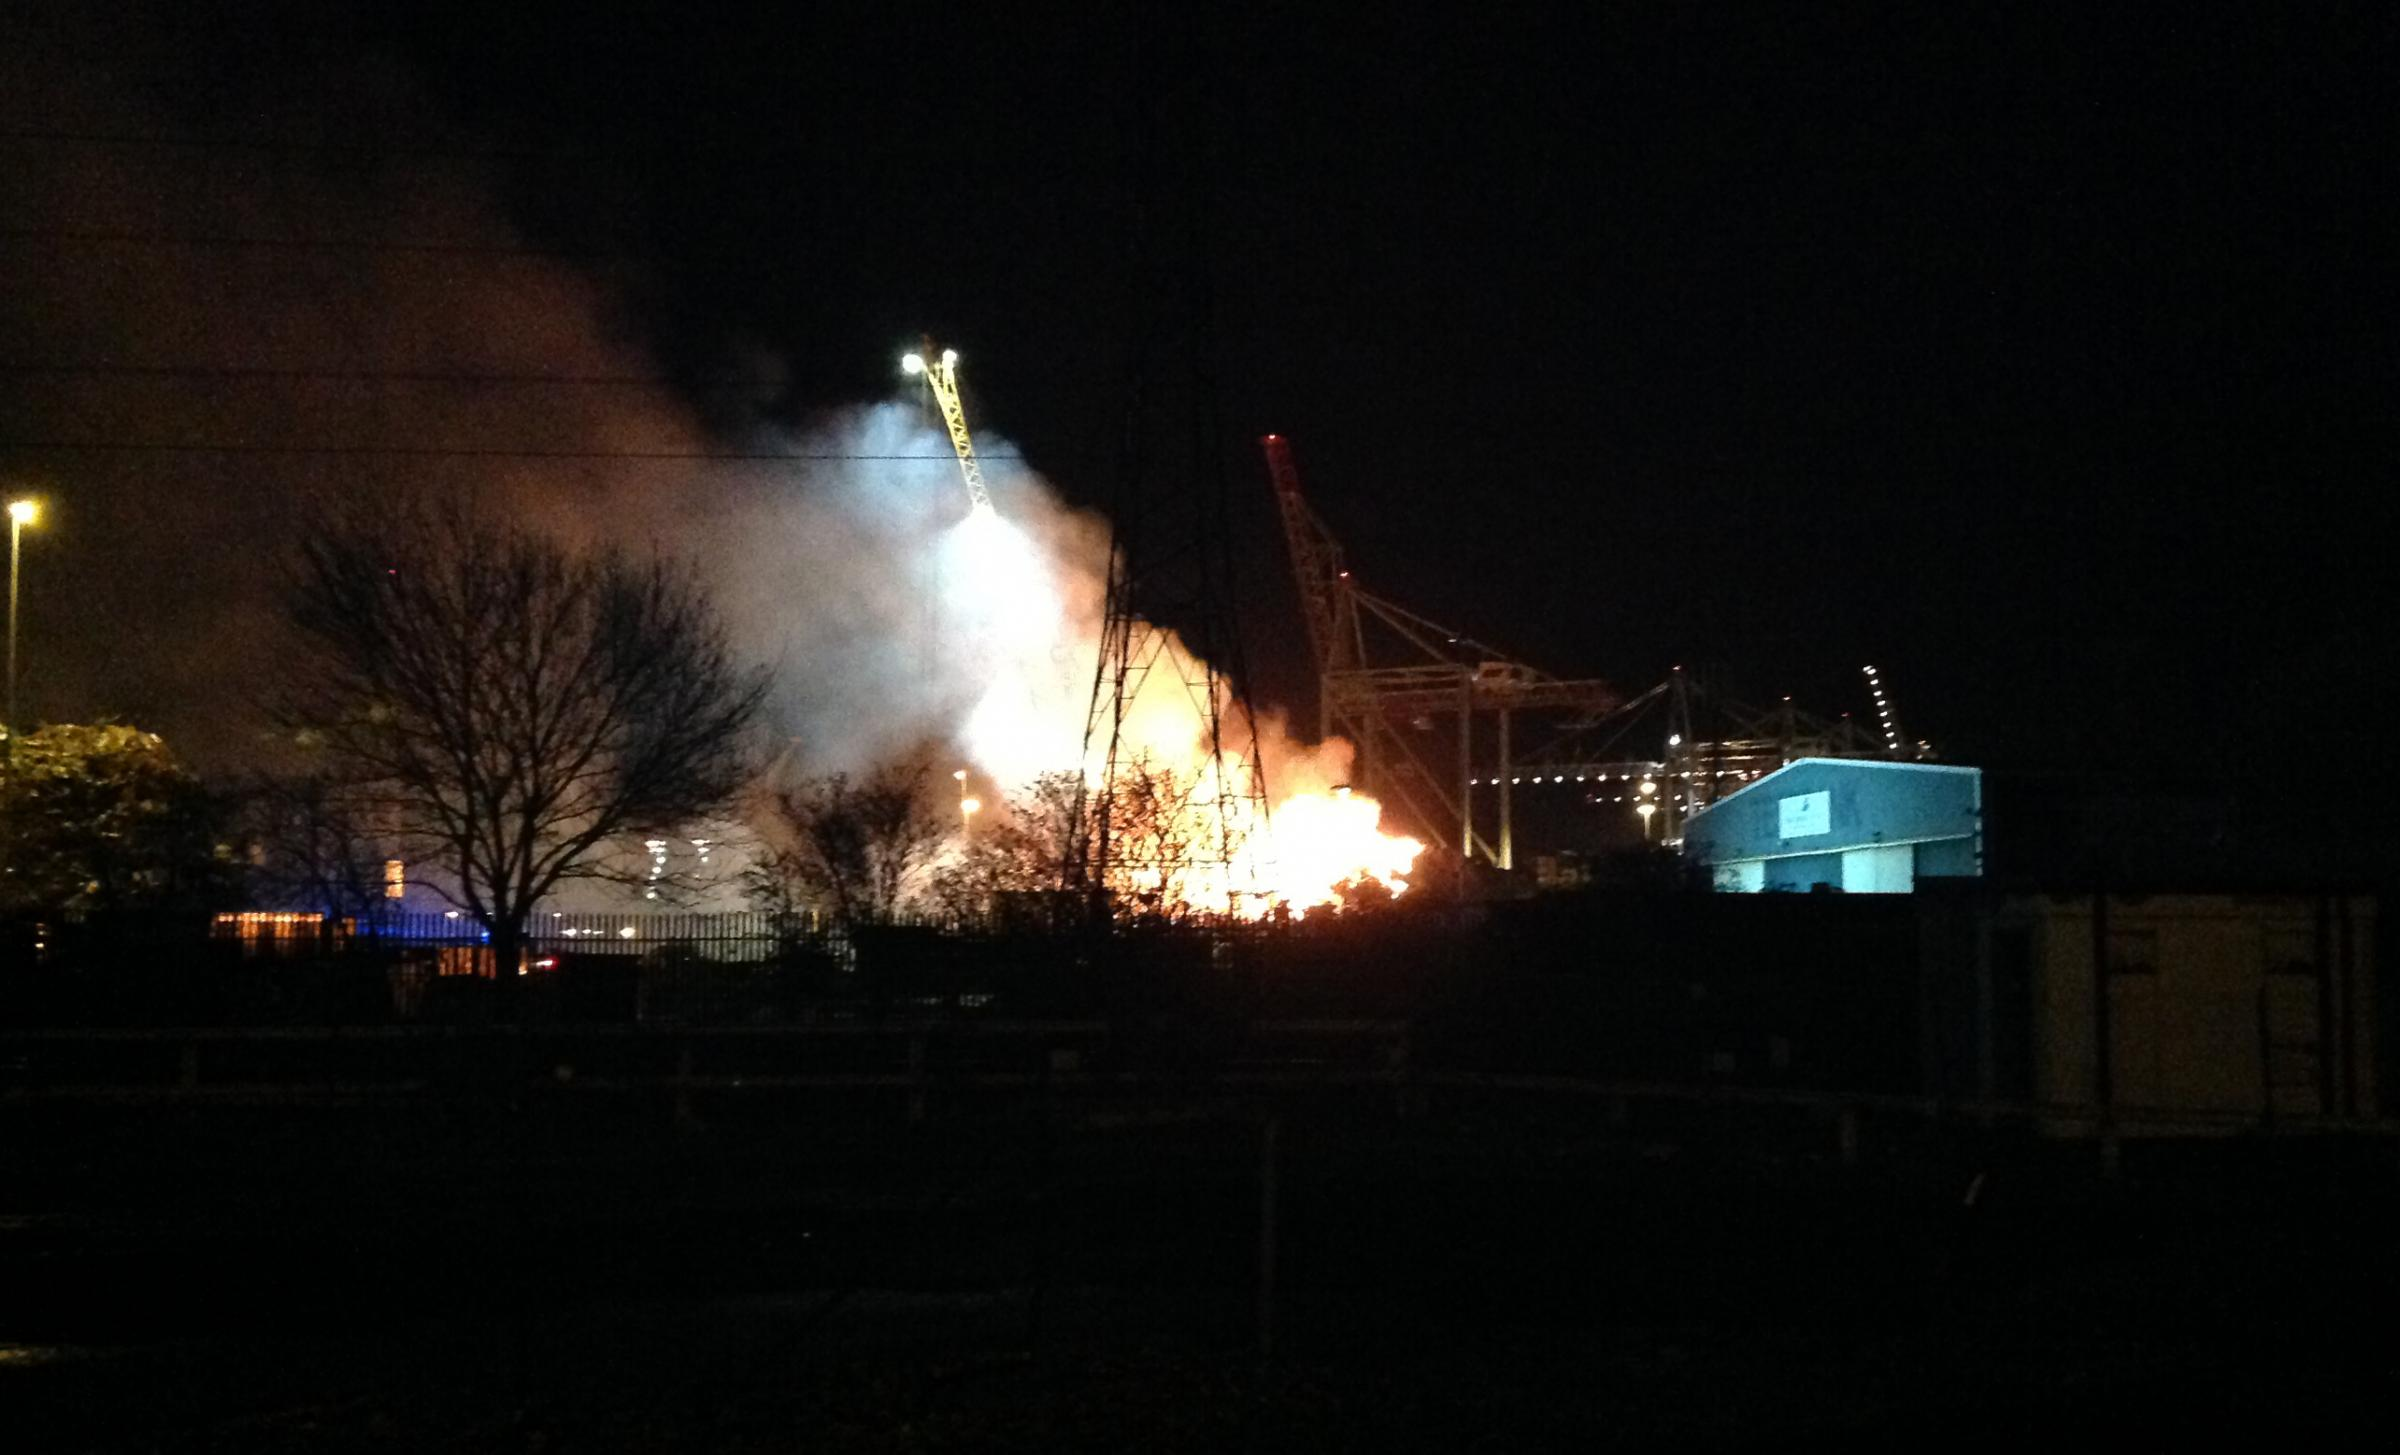 DOCKS FIRE: Fears over biomass plant reignited after woodchip blaze